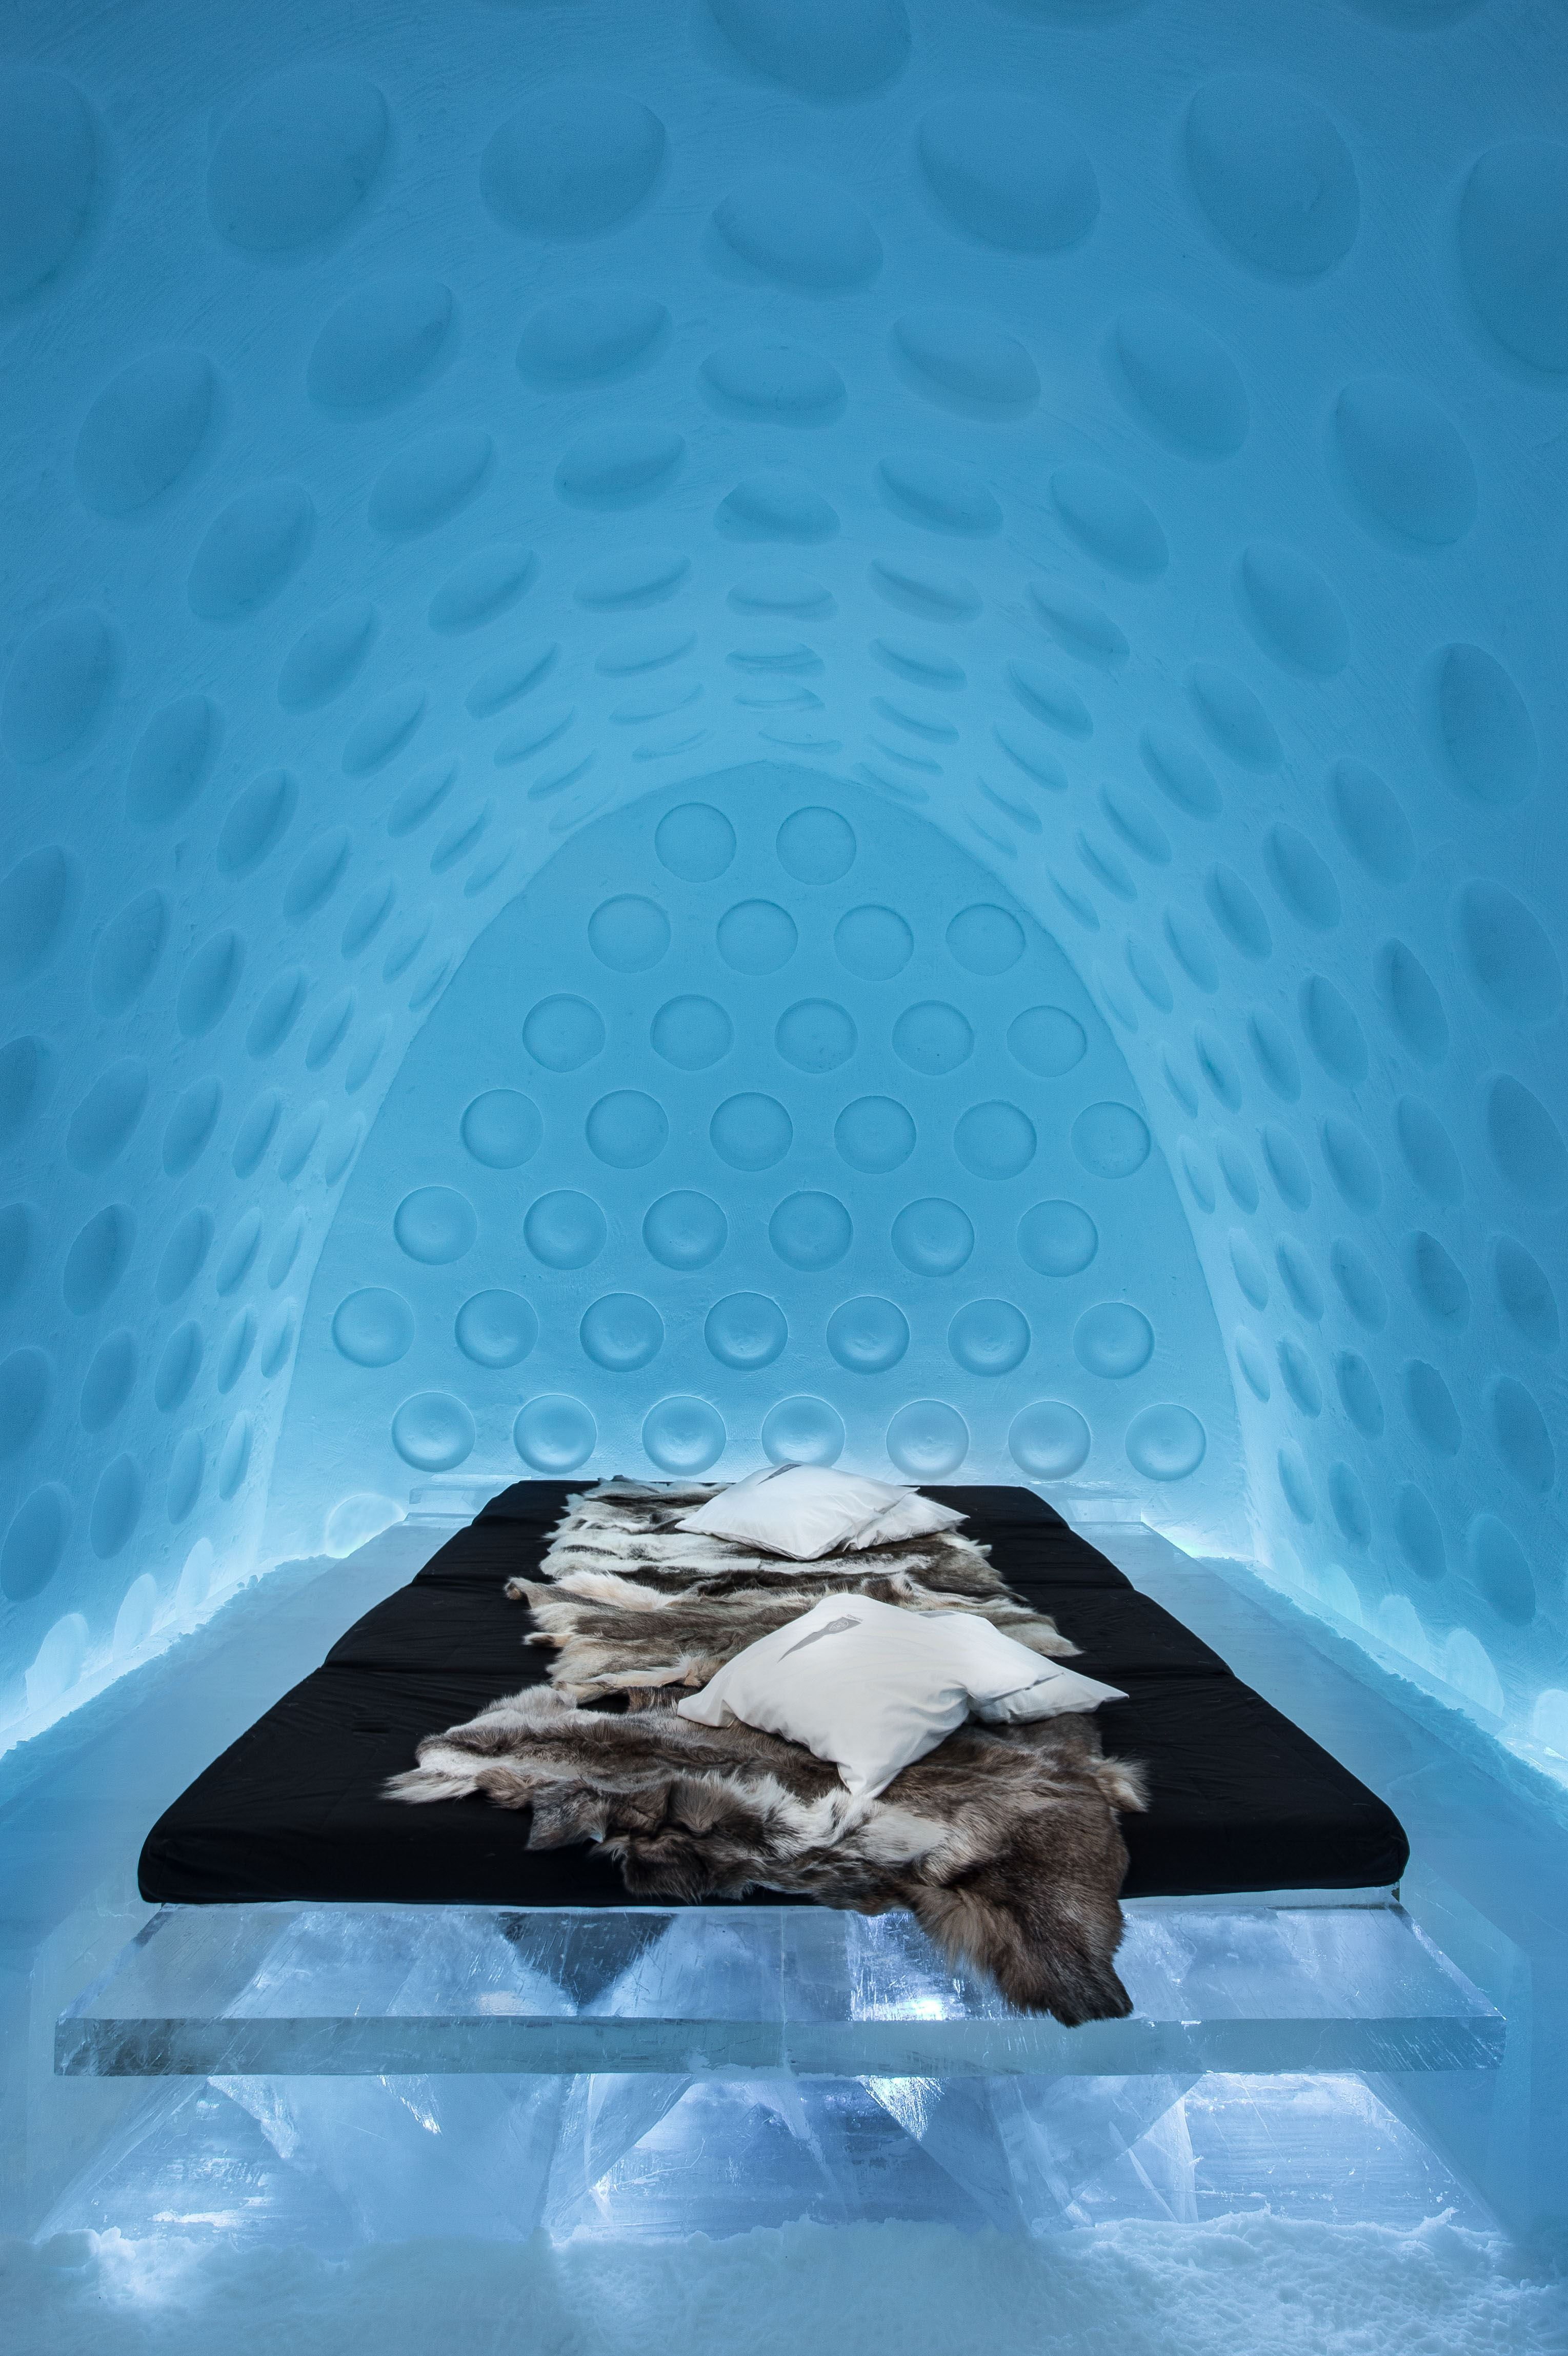 ICEHOTEL recommends